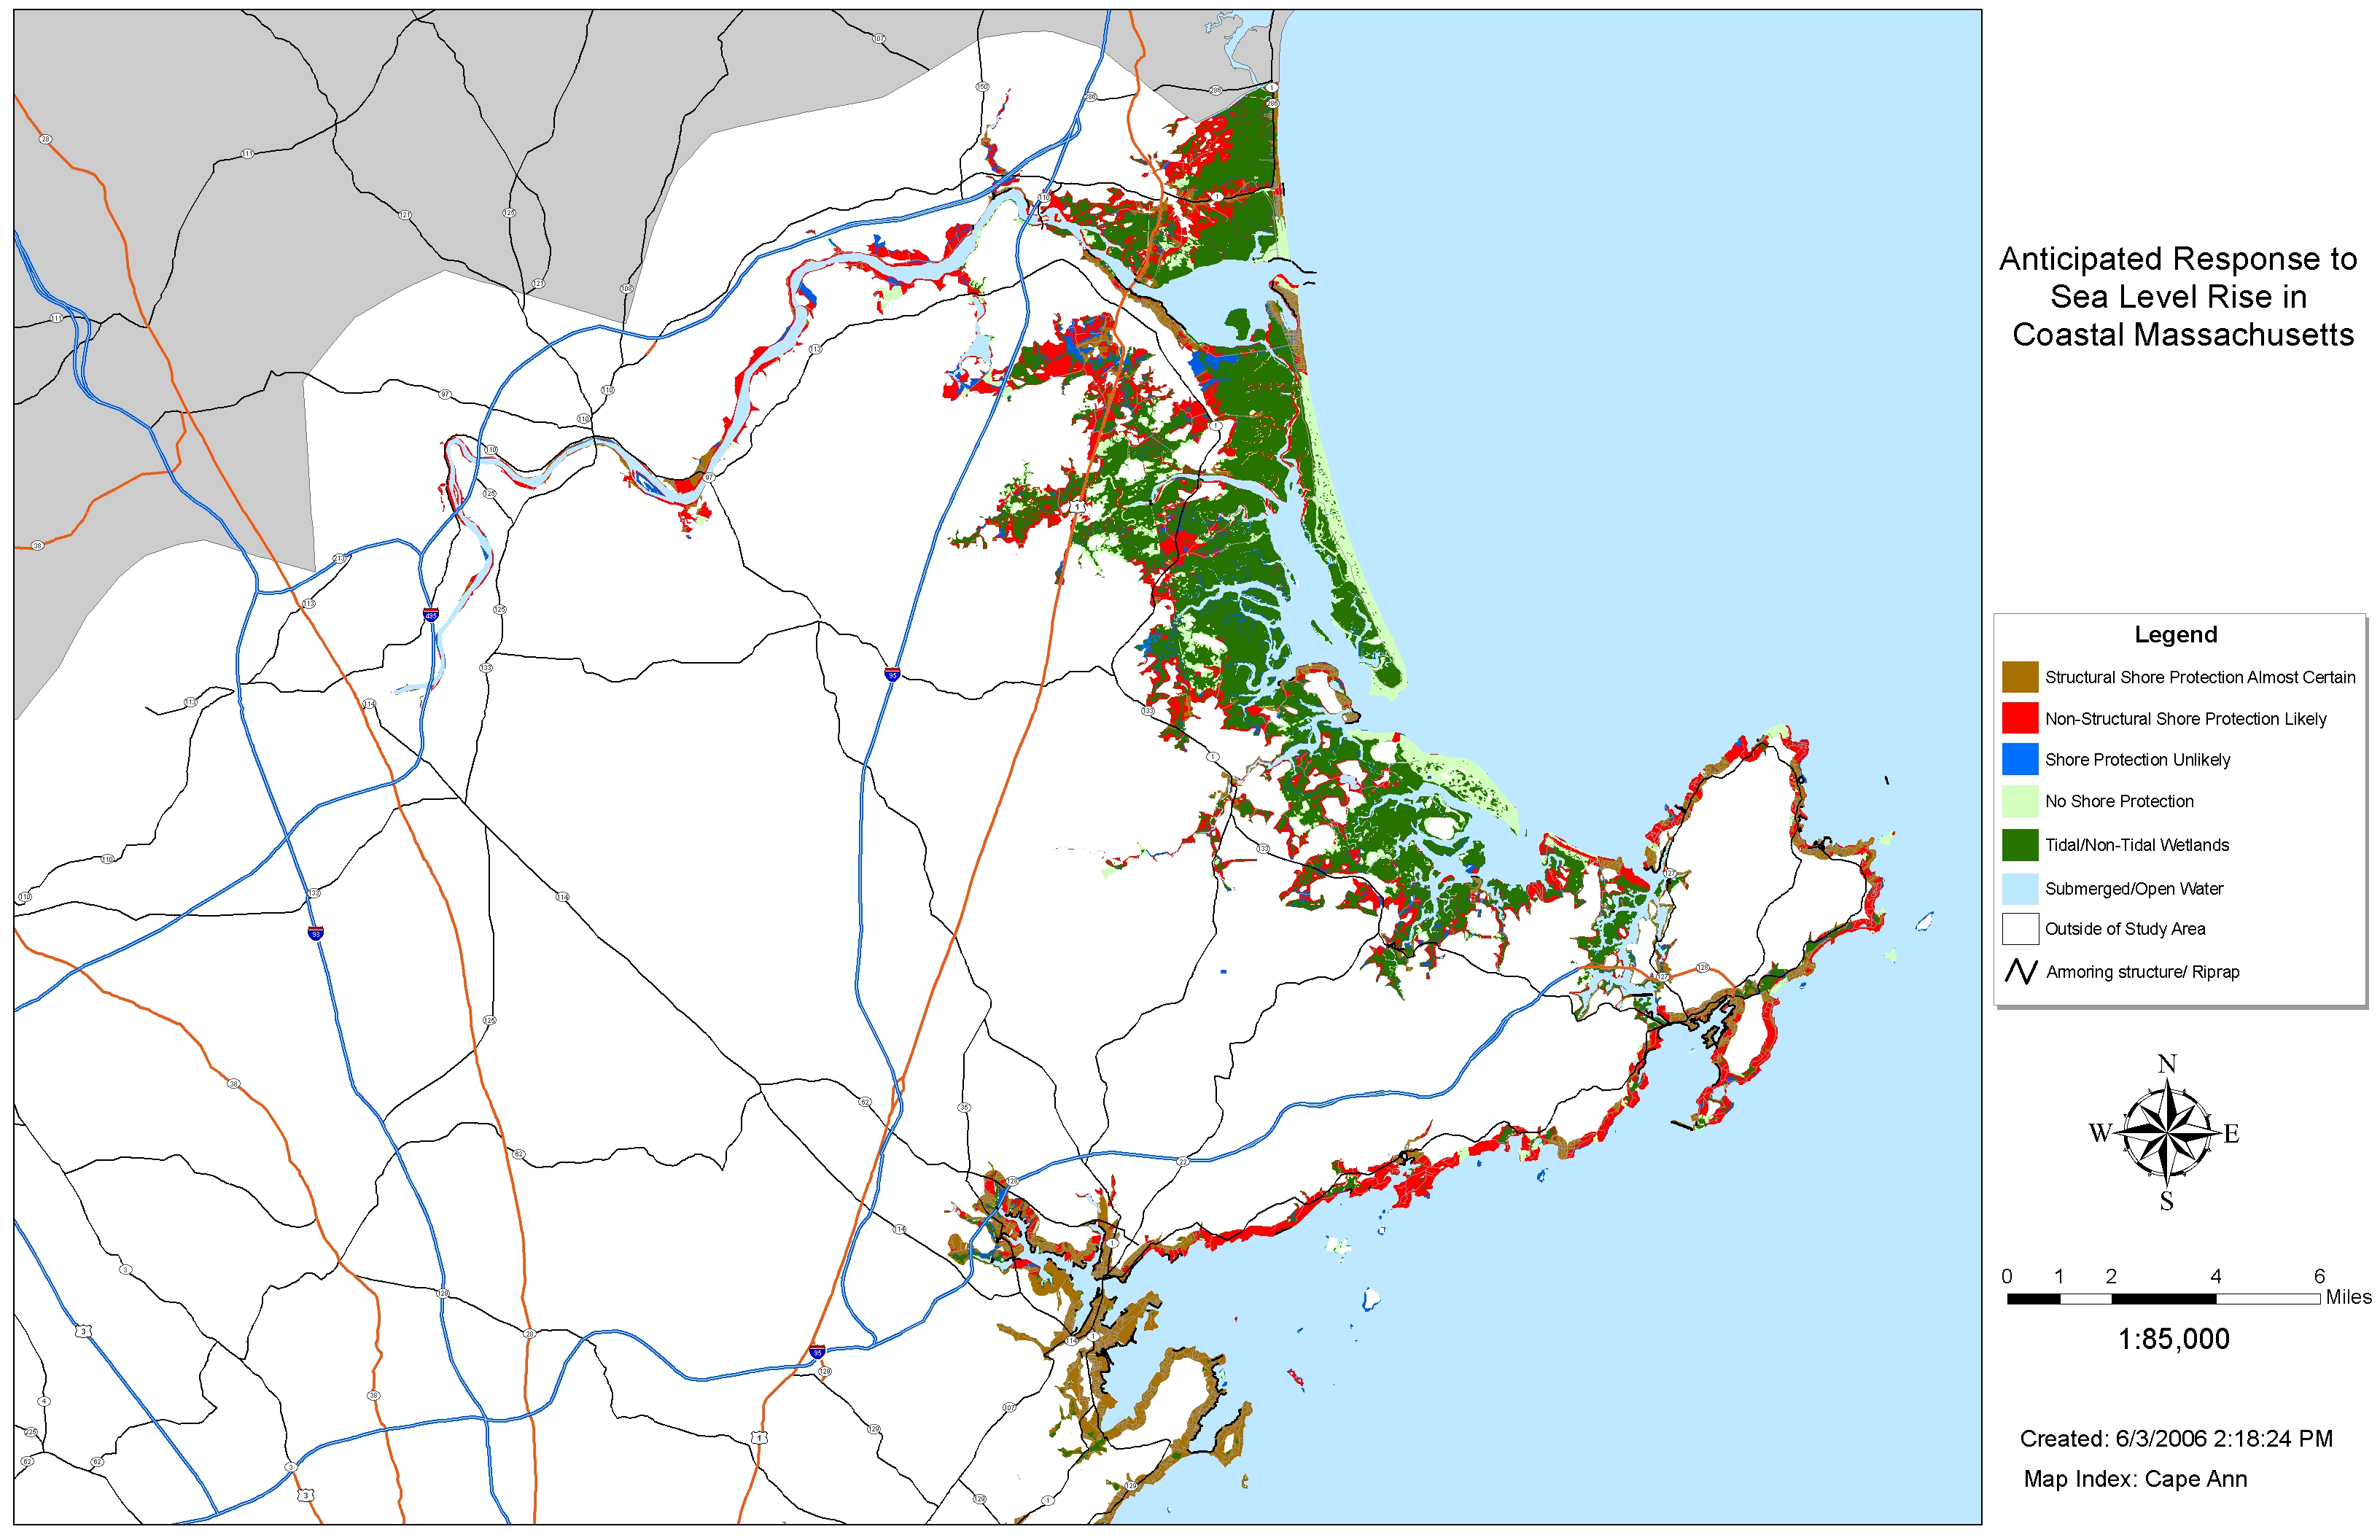 cape cod bay. sea level rise planning maps likelihood of shore protection in